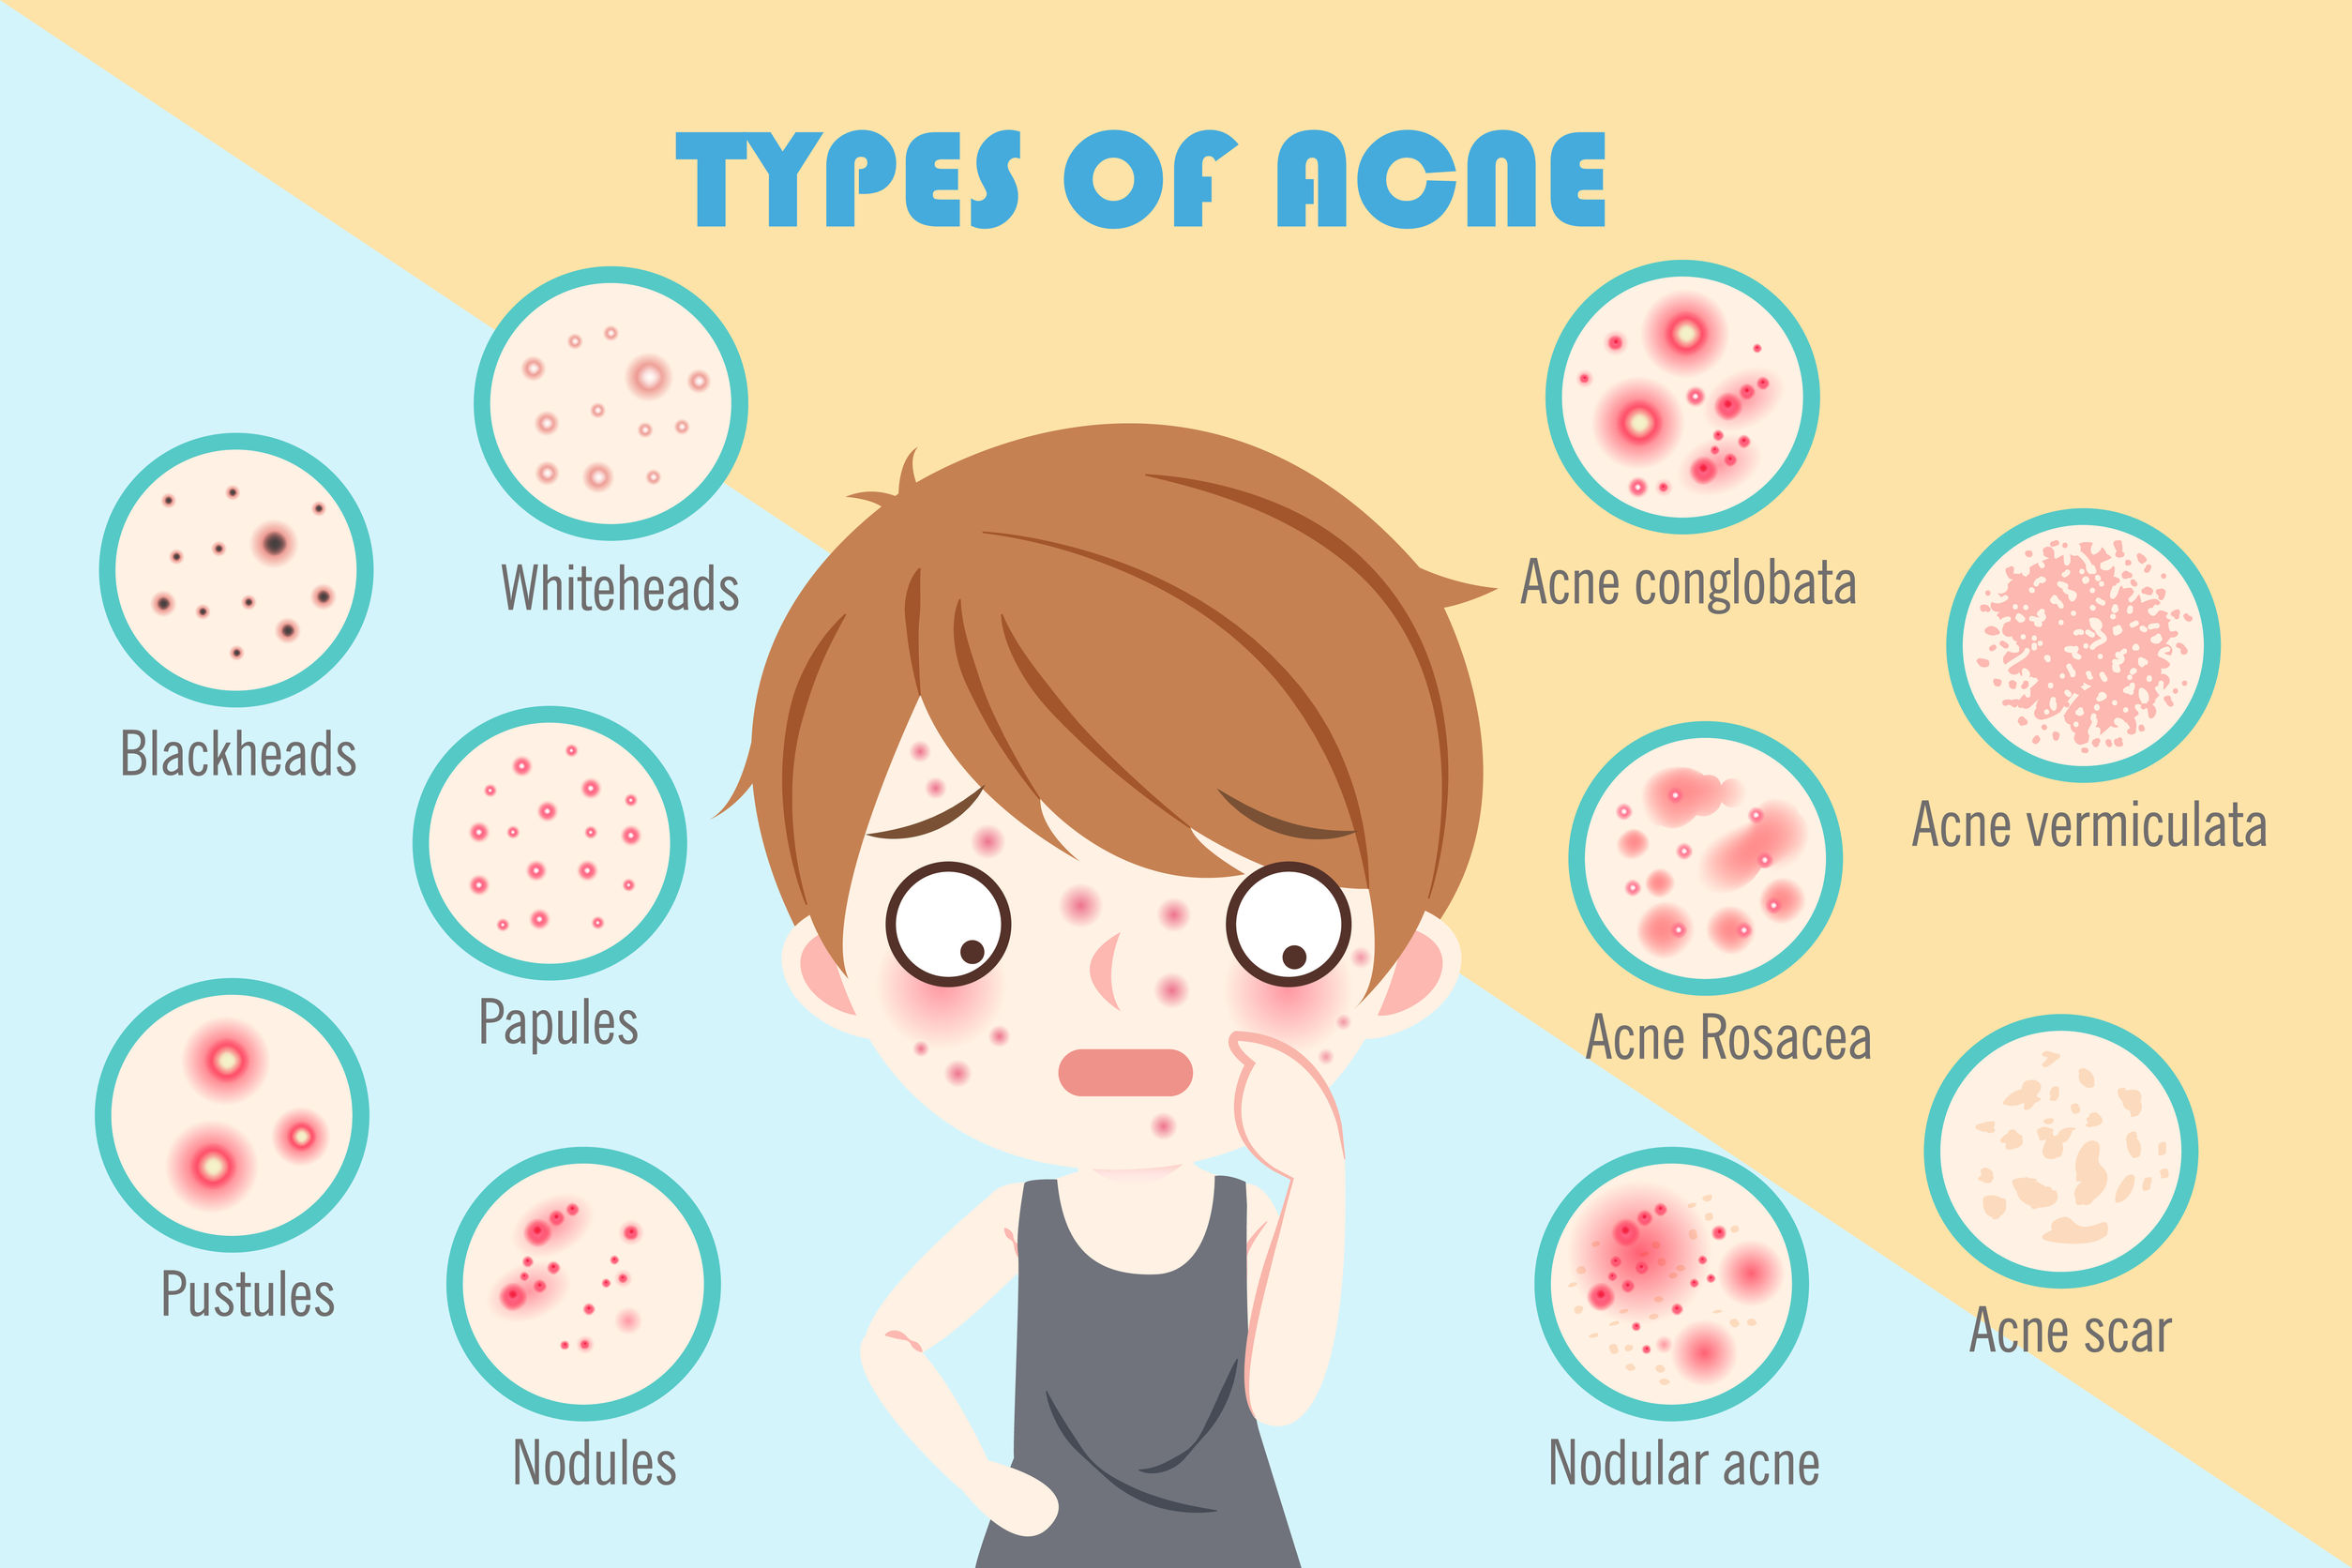 Type of acne